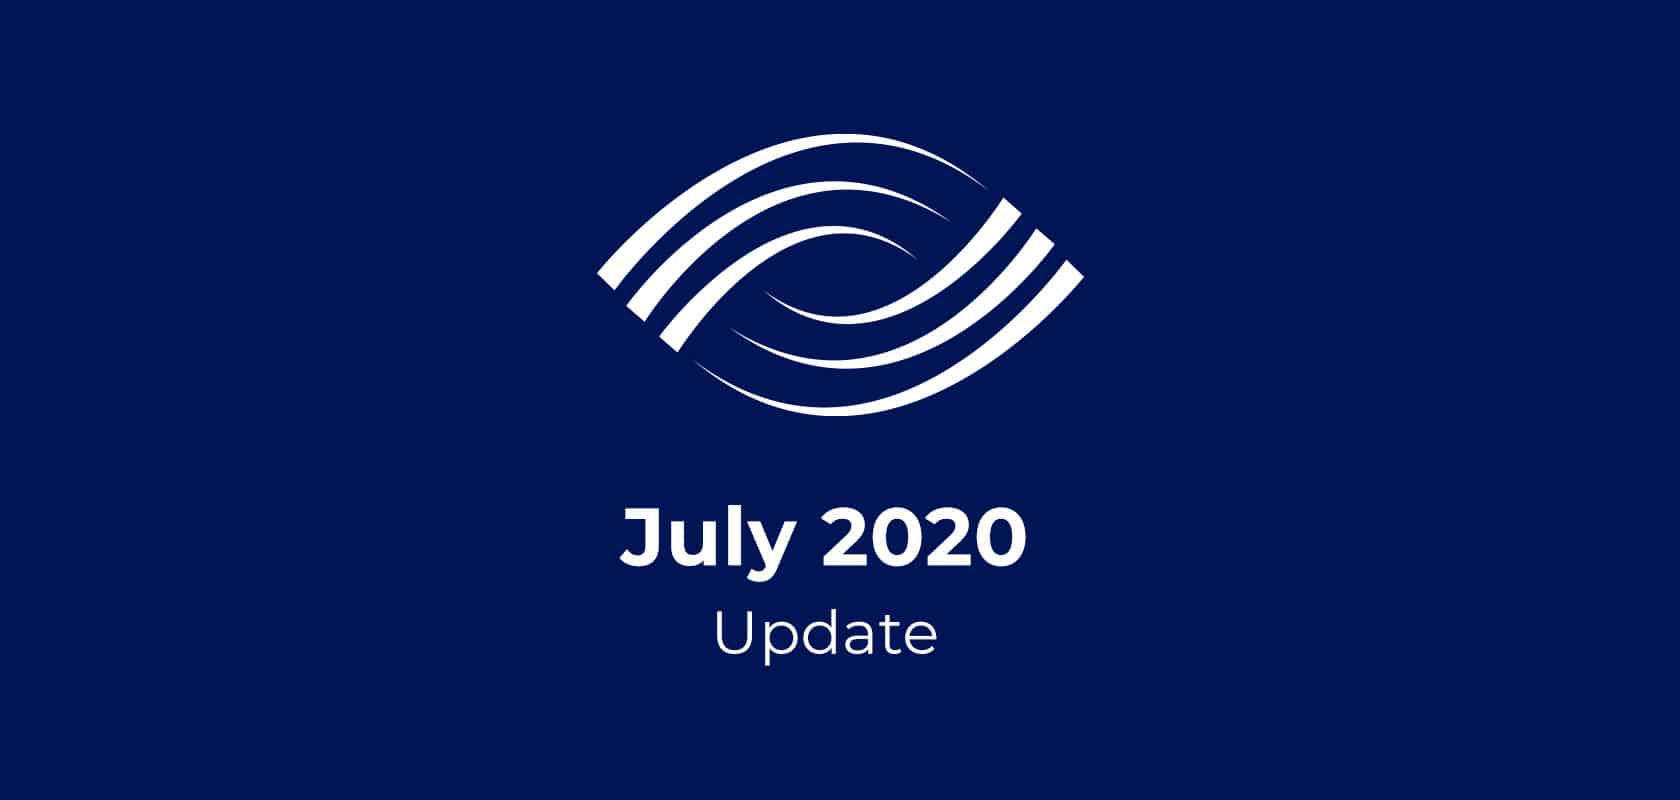 Eye Floaters Research Update | July 2020